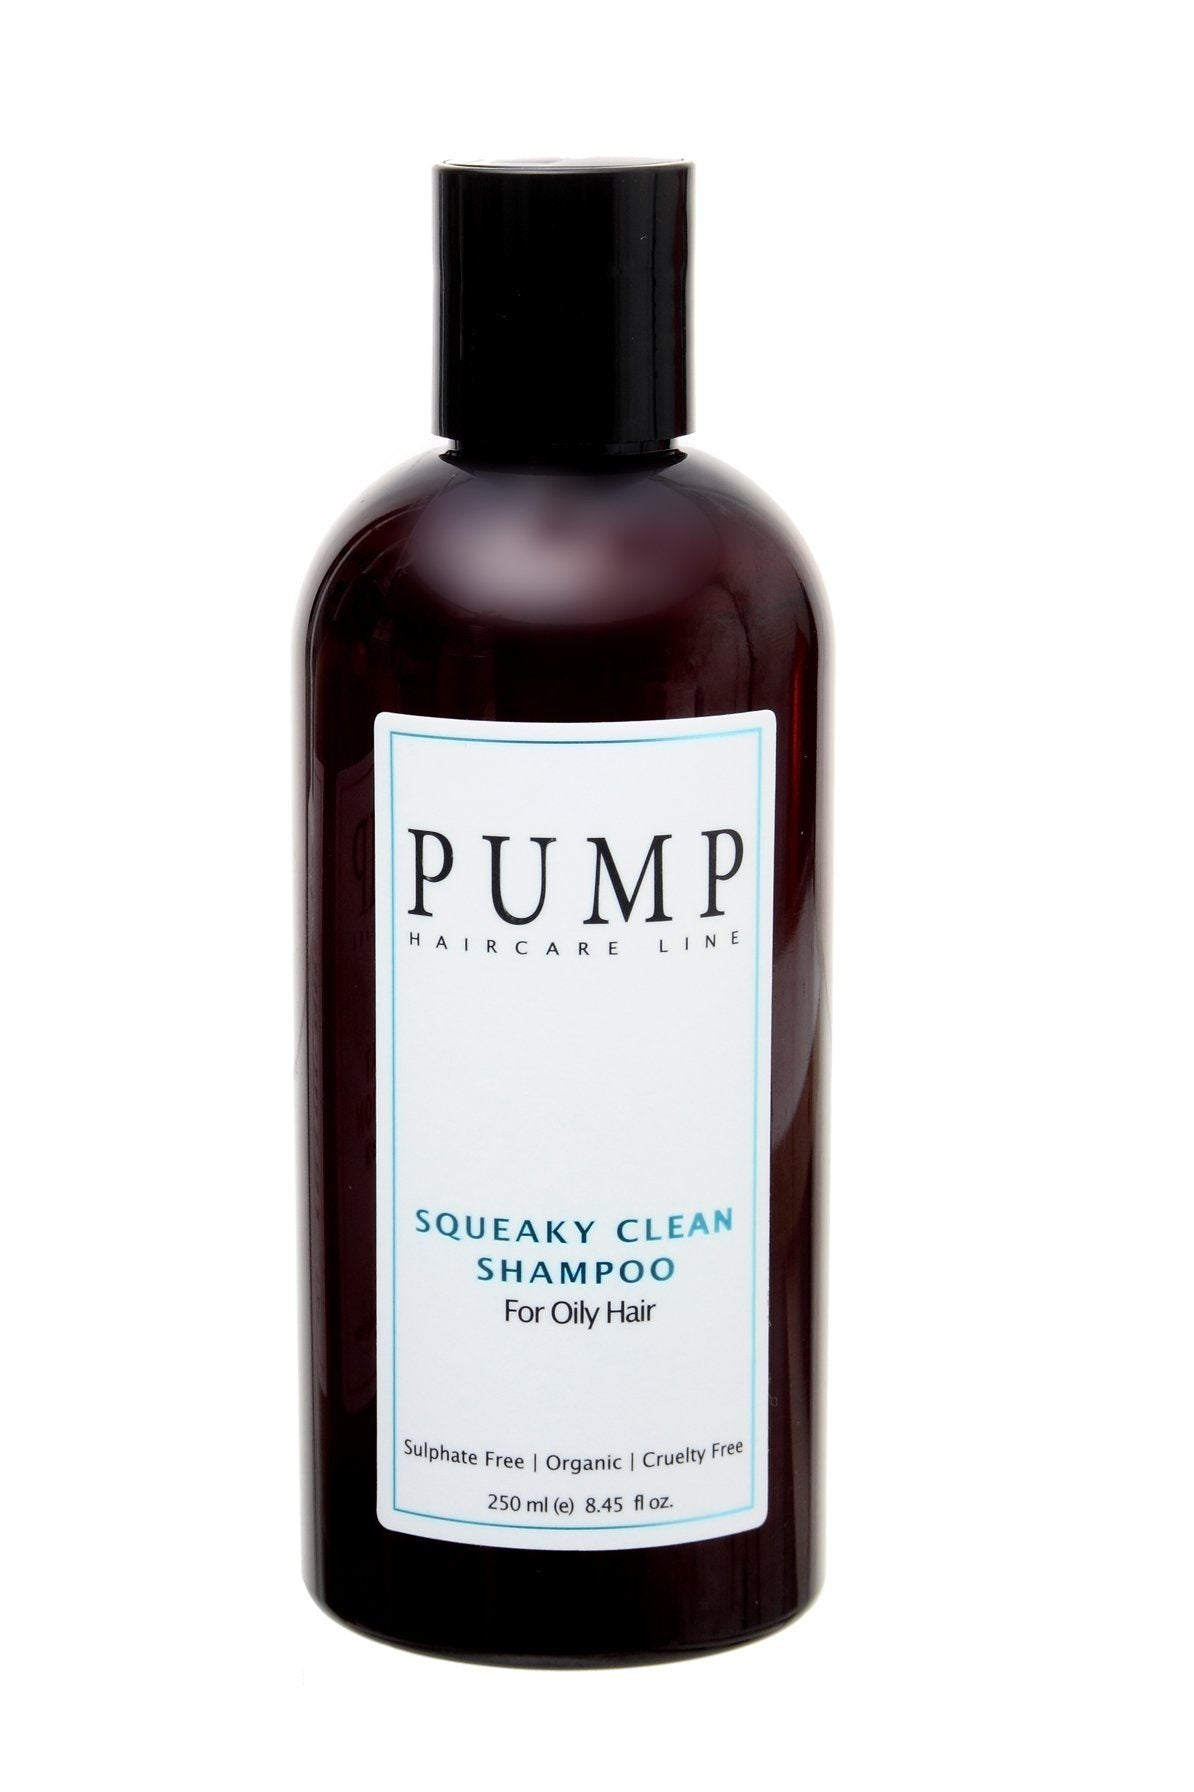 Pump Squeaky Clean Shampoo